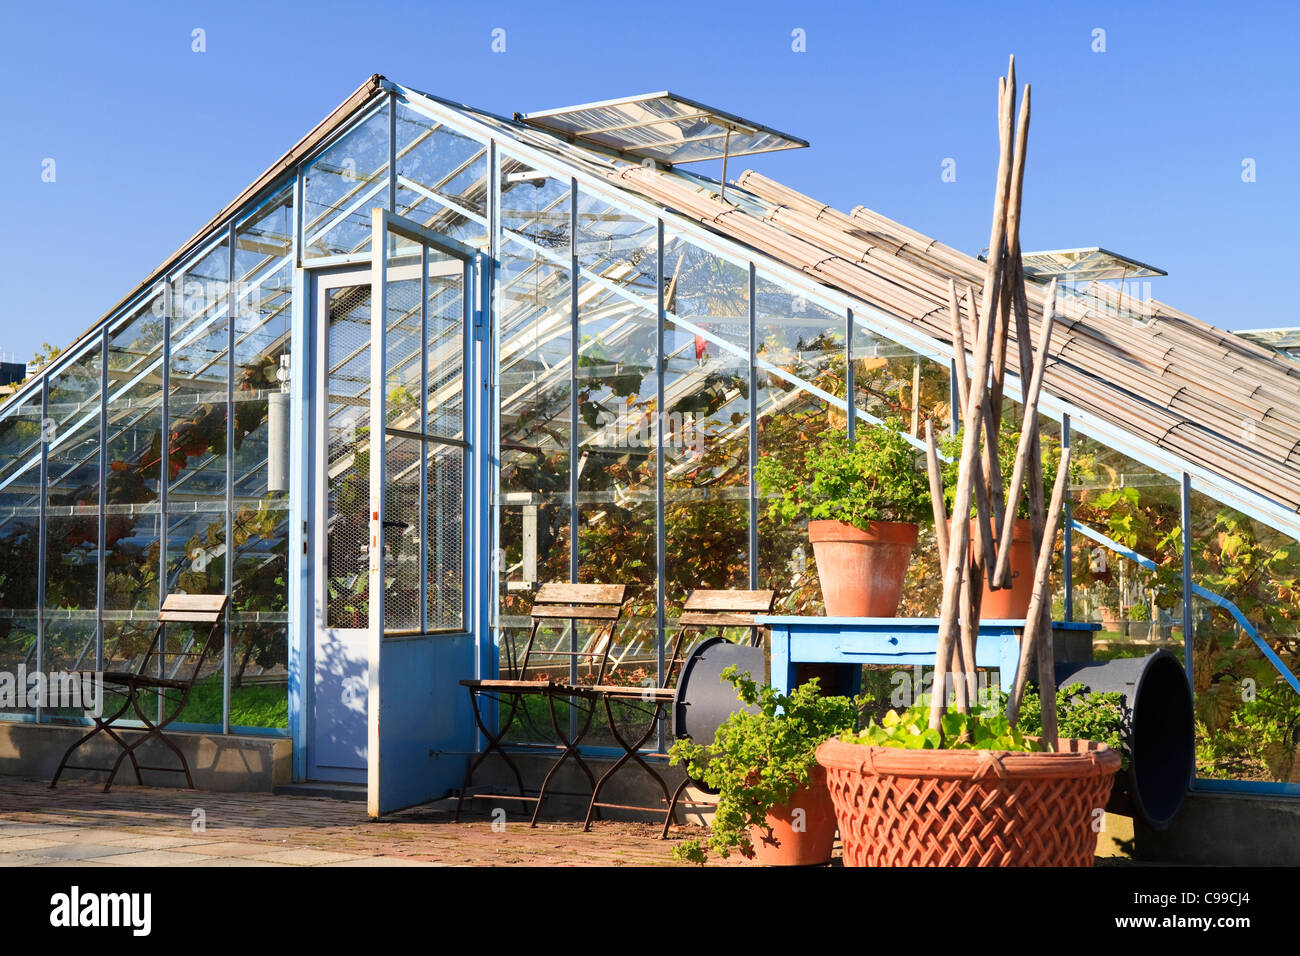 Old blue hot house used to cultivate vines on a sunny day in the autumn - Stock Image